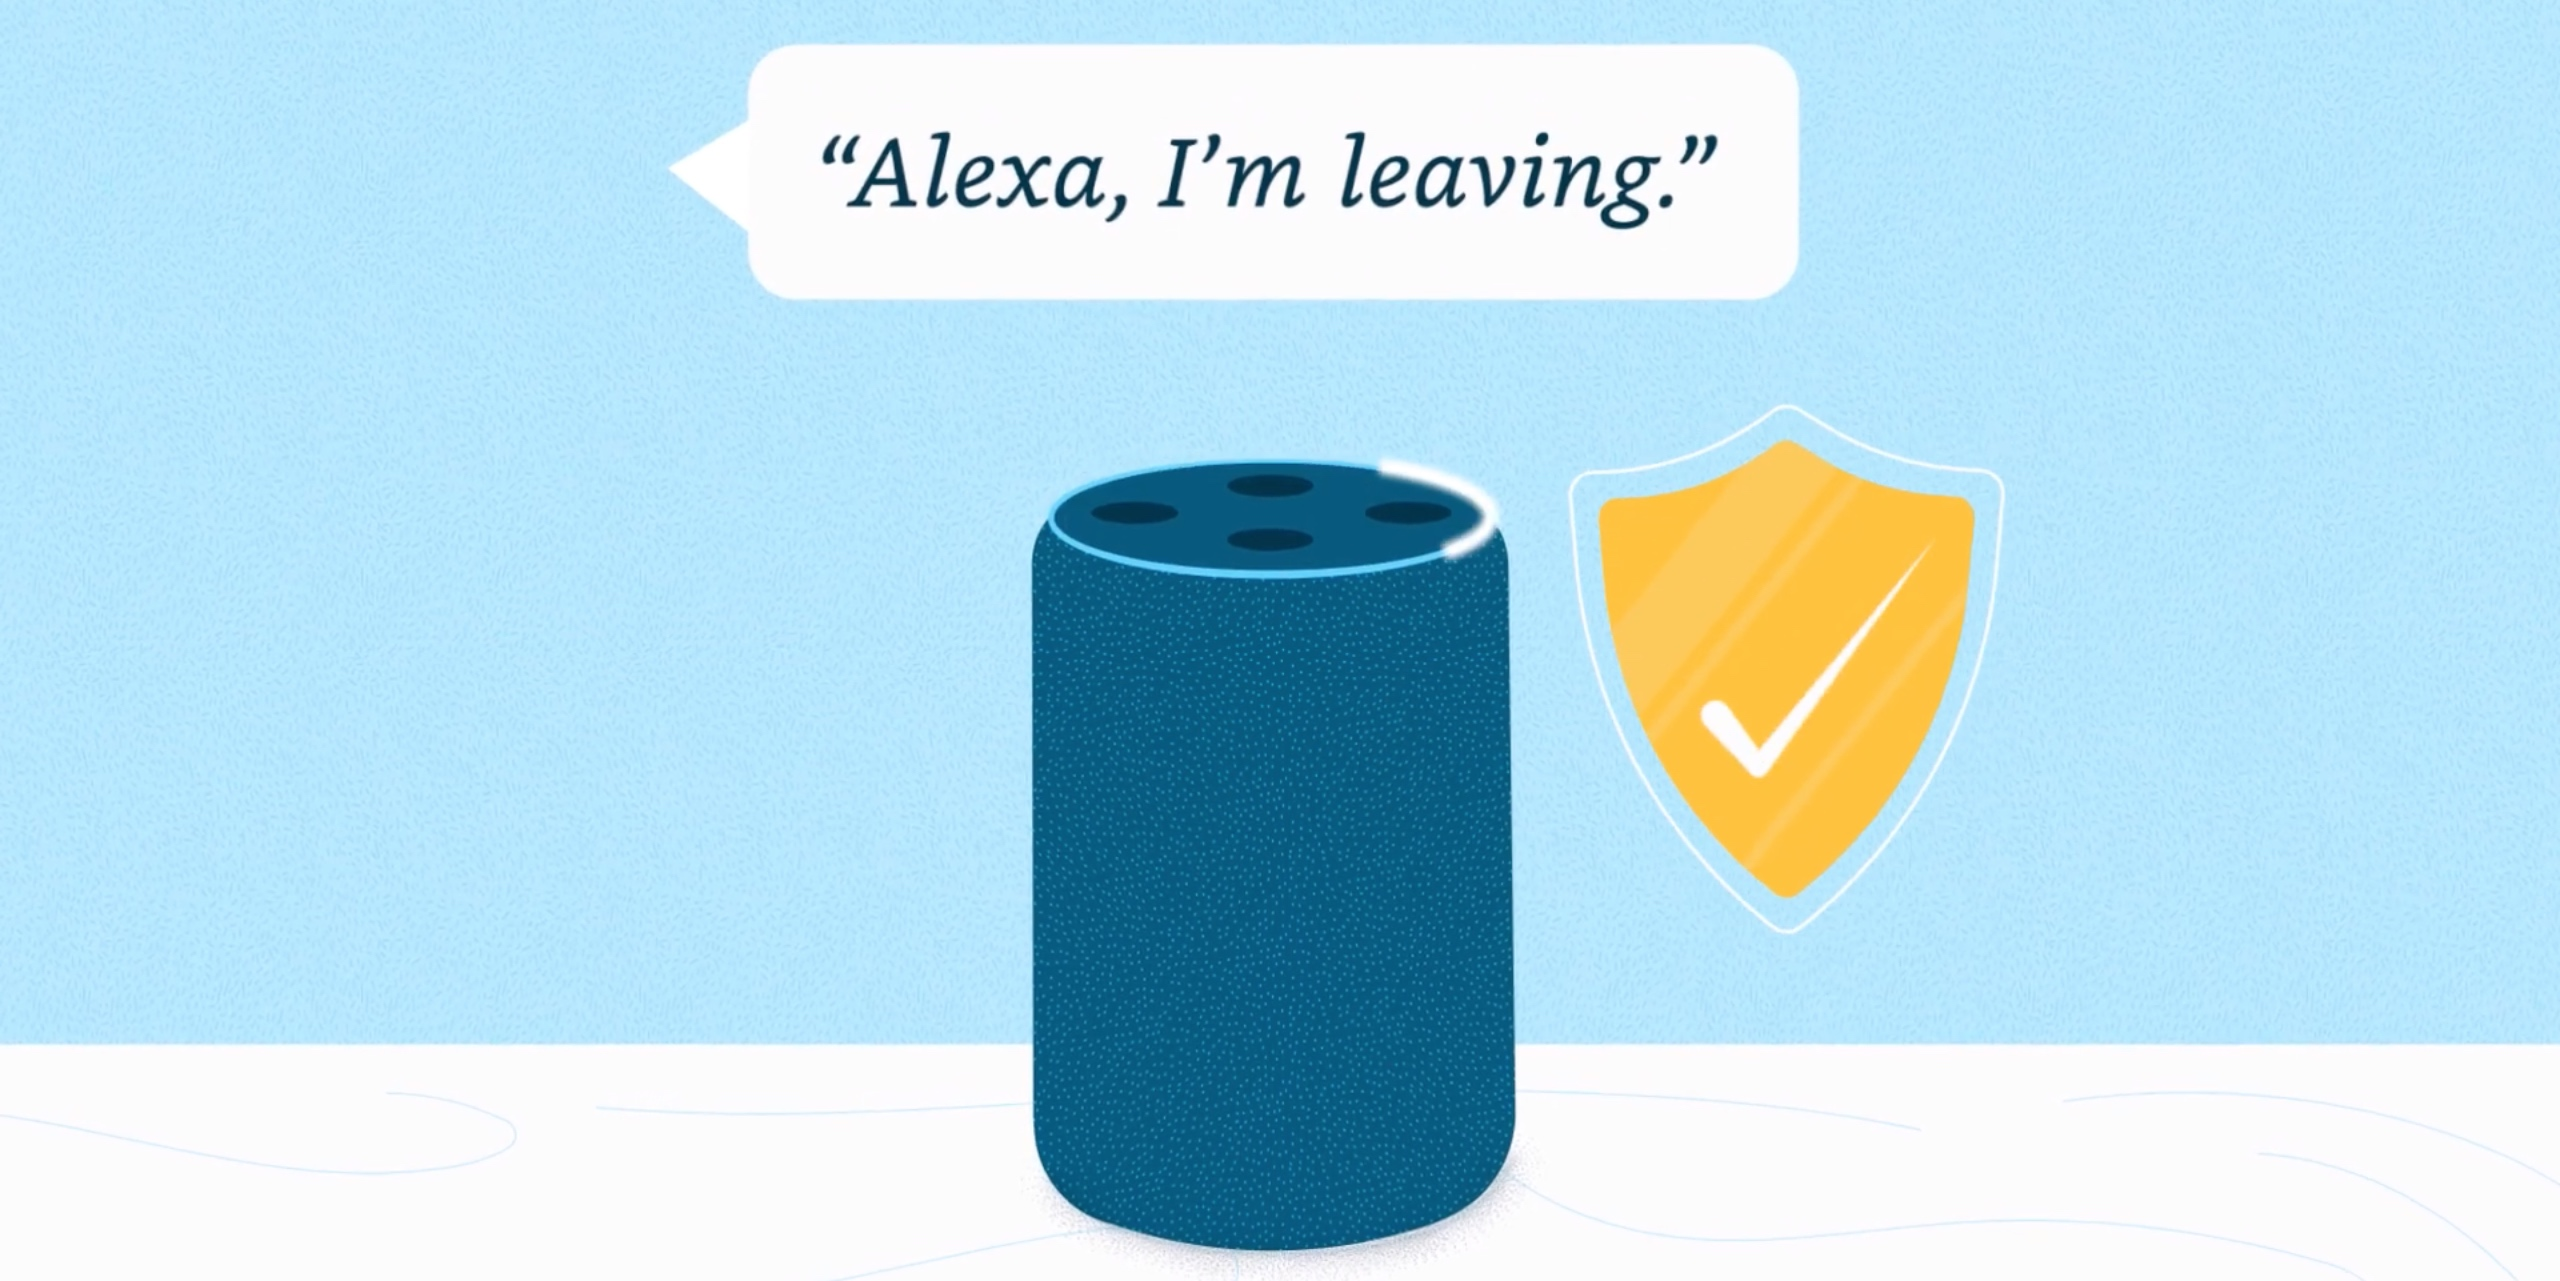 Alexa Guard now rolling out in the US: Echo alerts you when it hears sounds of smoke alarms and breaking glass